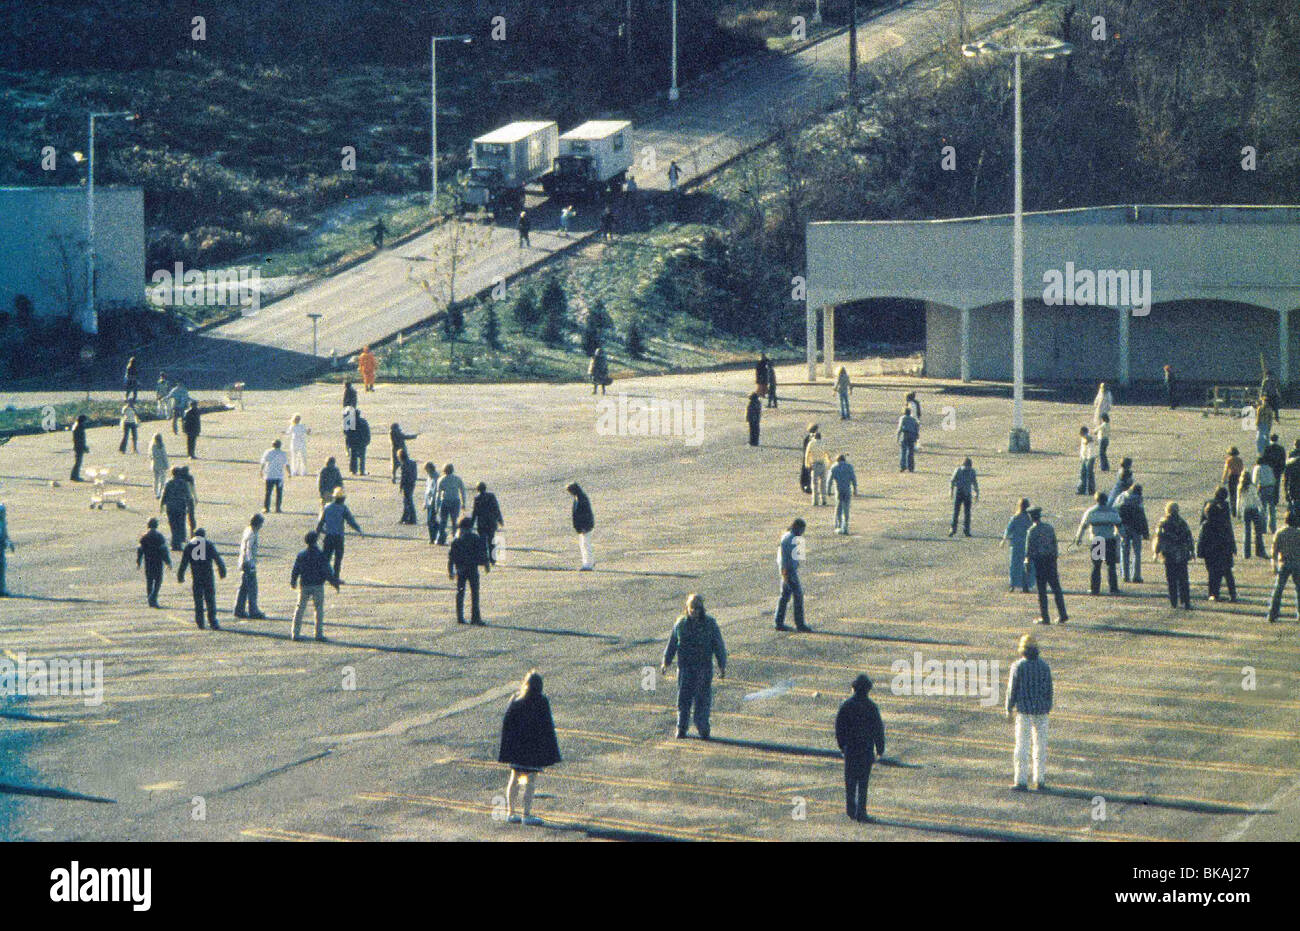 DAWN OF THE DEAD (1978) ZOMBIE (ALT) DODE 005 - Stock Image